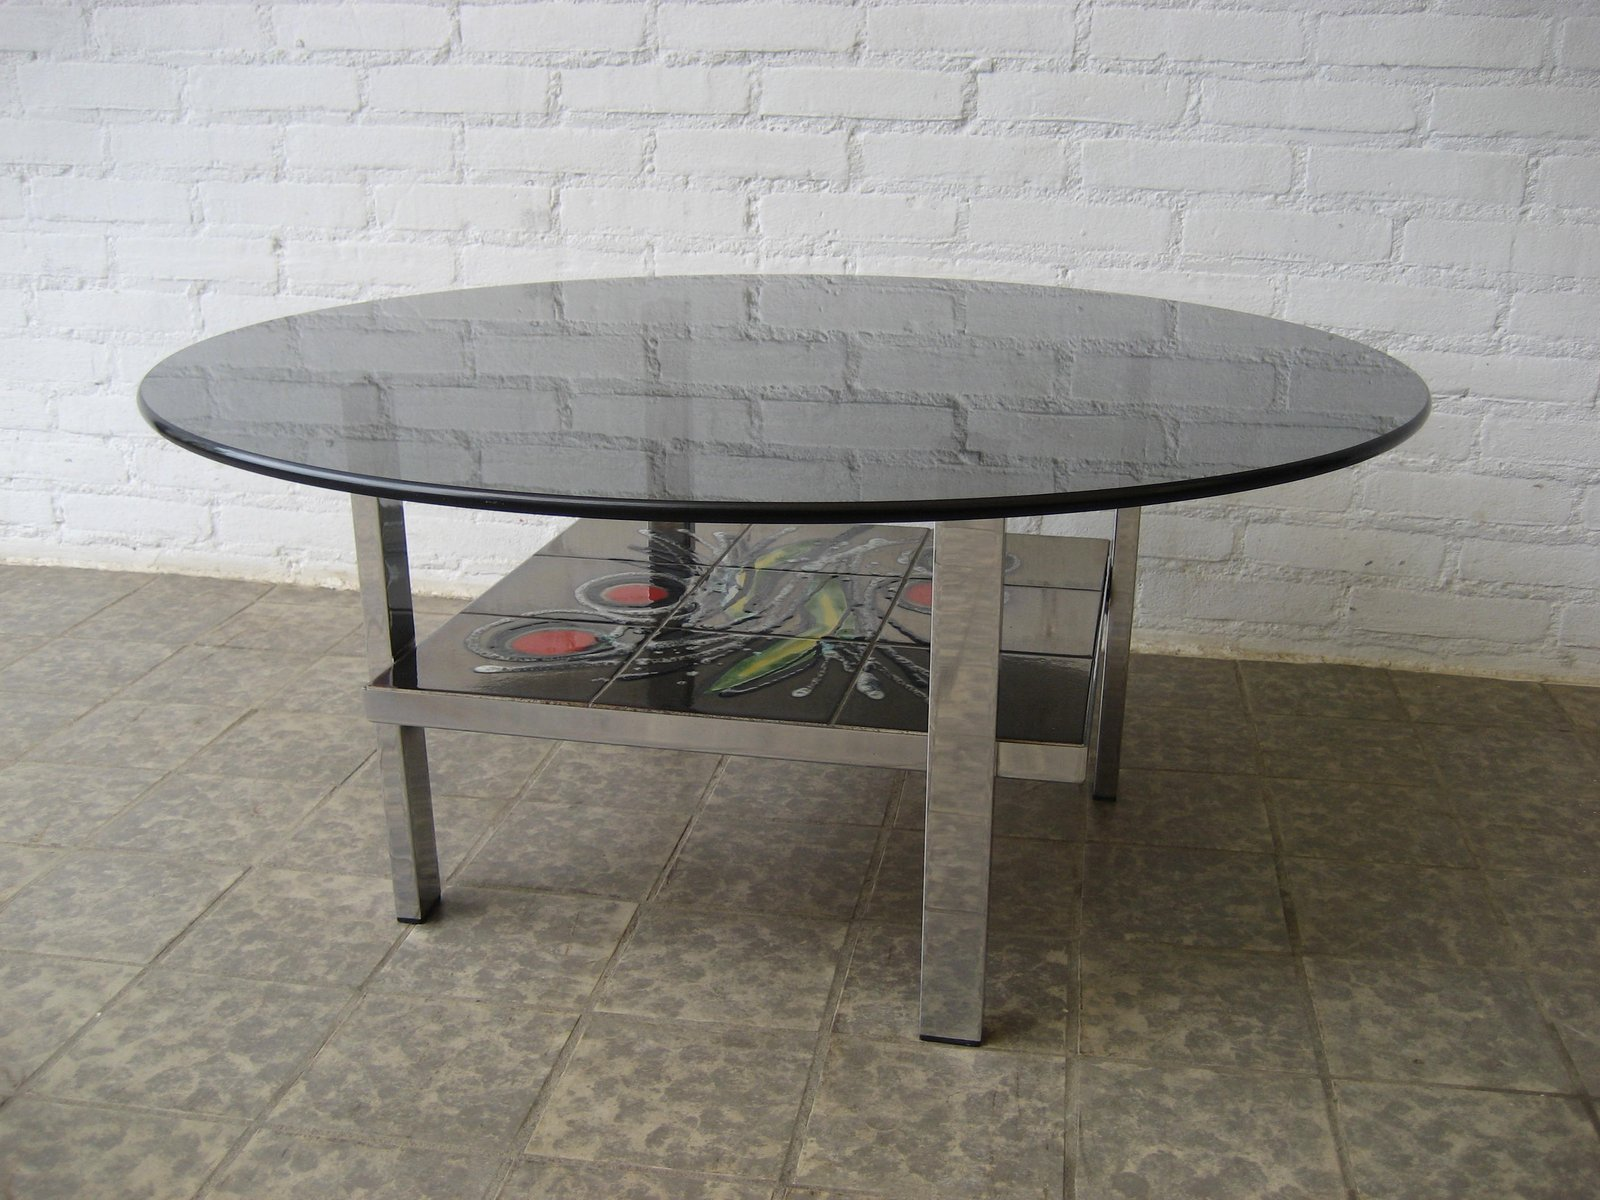 Vintage Belgian Tile and Glass Coffee Table 1960s for sale at Pamono